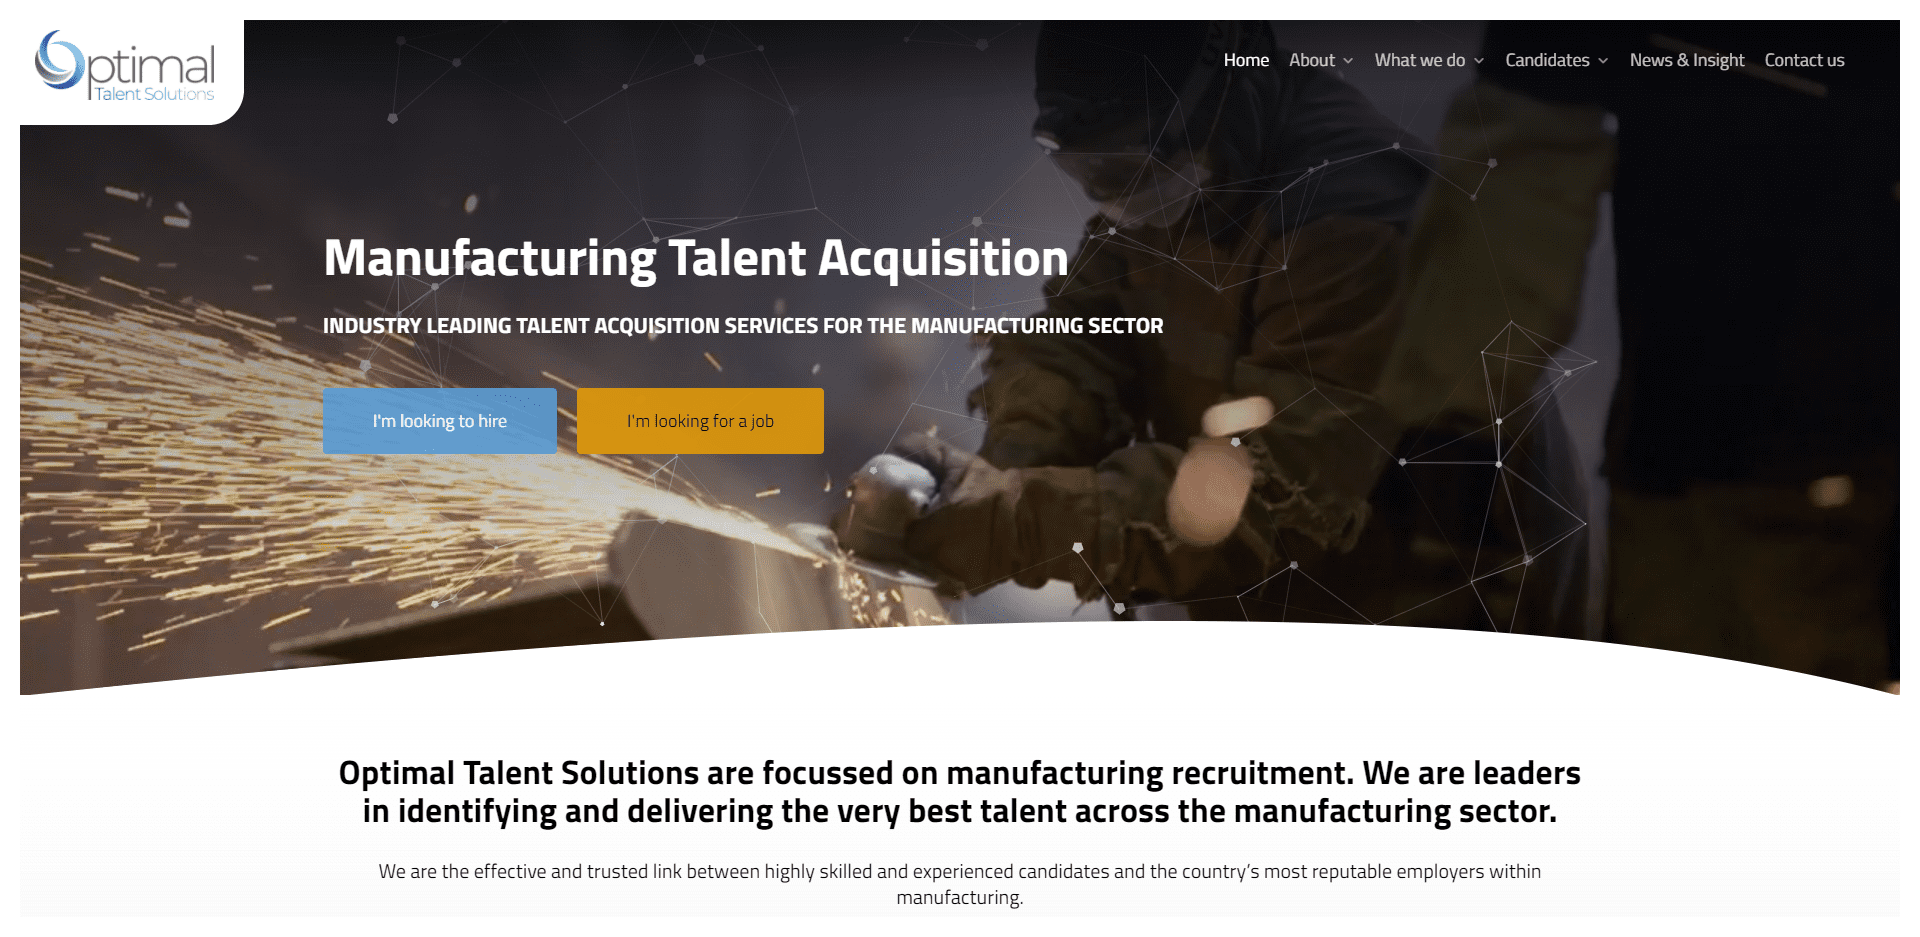 Optimal Talent Solutions